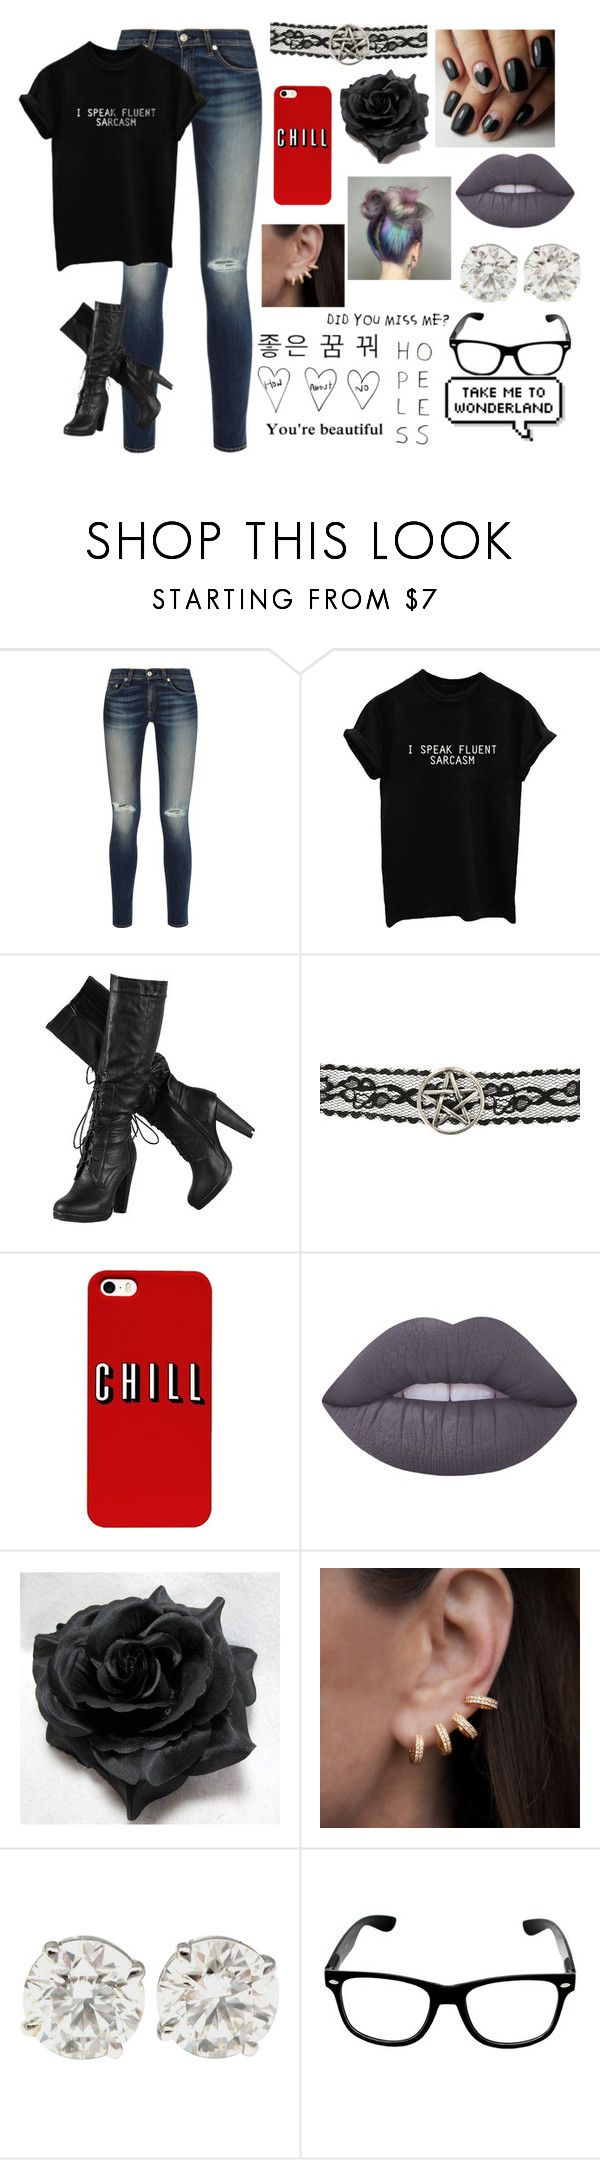 """Jaiden Smith"" by maya-fischbach on Polyvore featuring rag & bone, Lime Crime, Anne Sisteron, Prada and Kara"